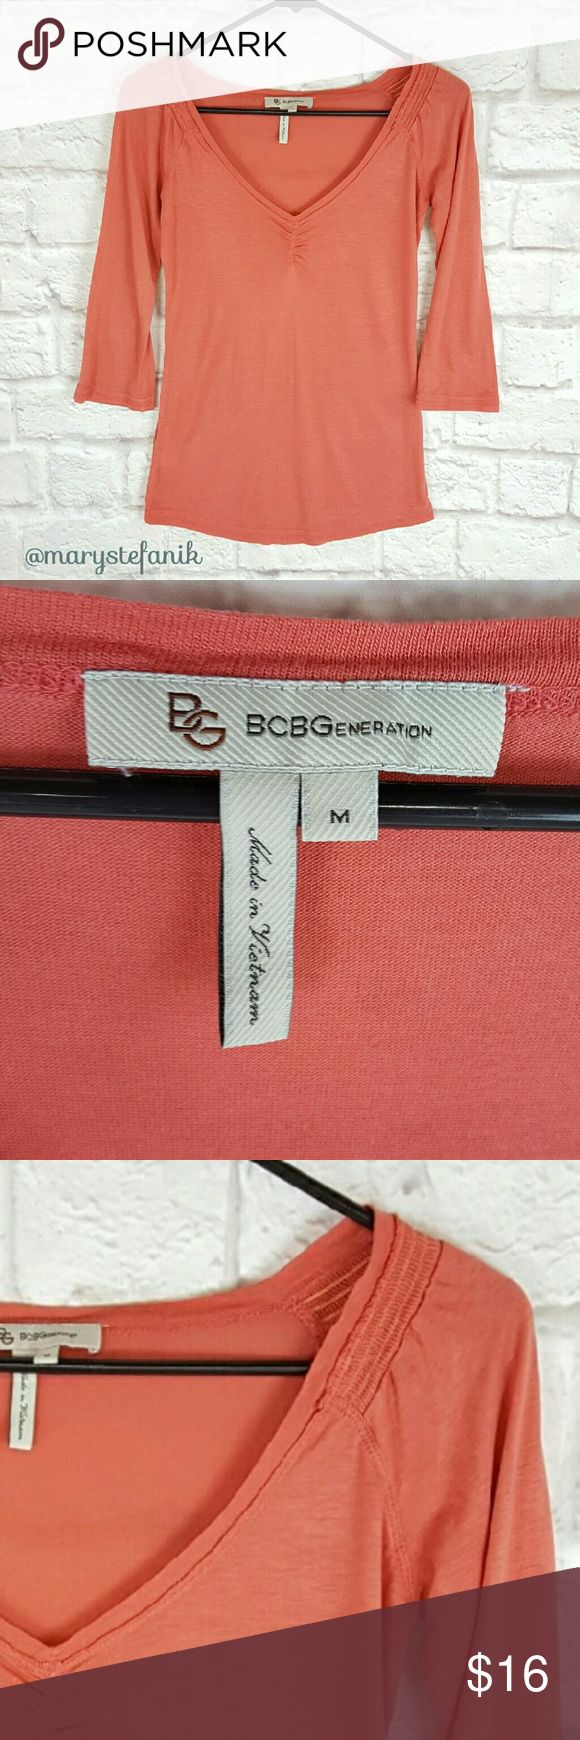 "BCBGeneration 3/4 Sleeve Coral Tee T Shirt size M BCBGeneration 3/4 Sleeve Coral Tee T Shirt size M in excellent used condition. Slightly sheer. Form fitting. Soft and stretchy. 60% Rayon and 40% Acrylic.   Waist from Seam to Seam: 15"" Length from Top: 24""  Please let me know if you have any questions. Happy Poshing! BCBGeneration Tops Tees - Long Sleeve"